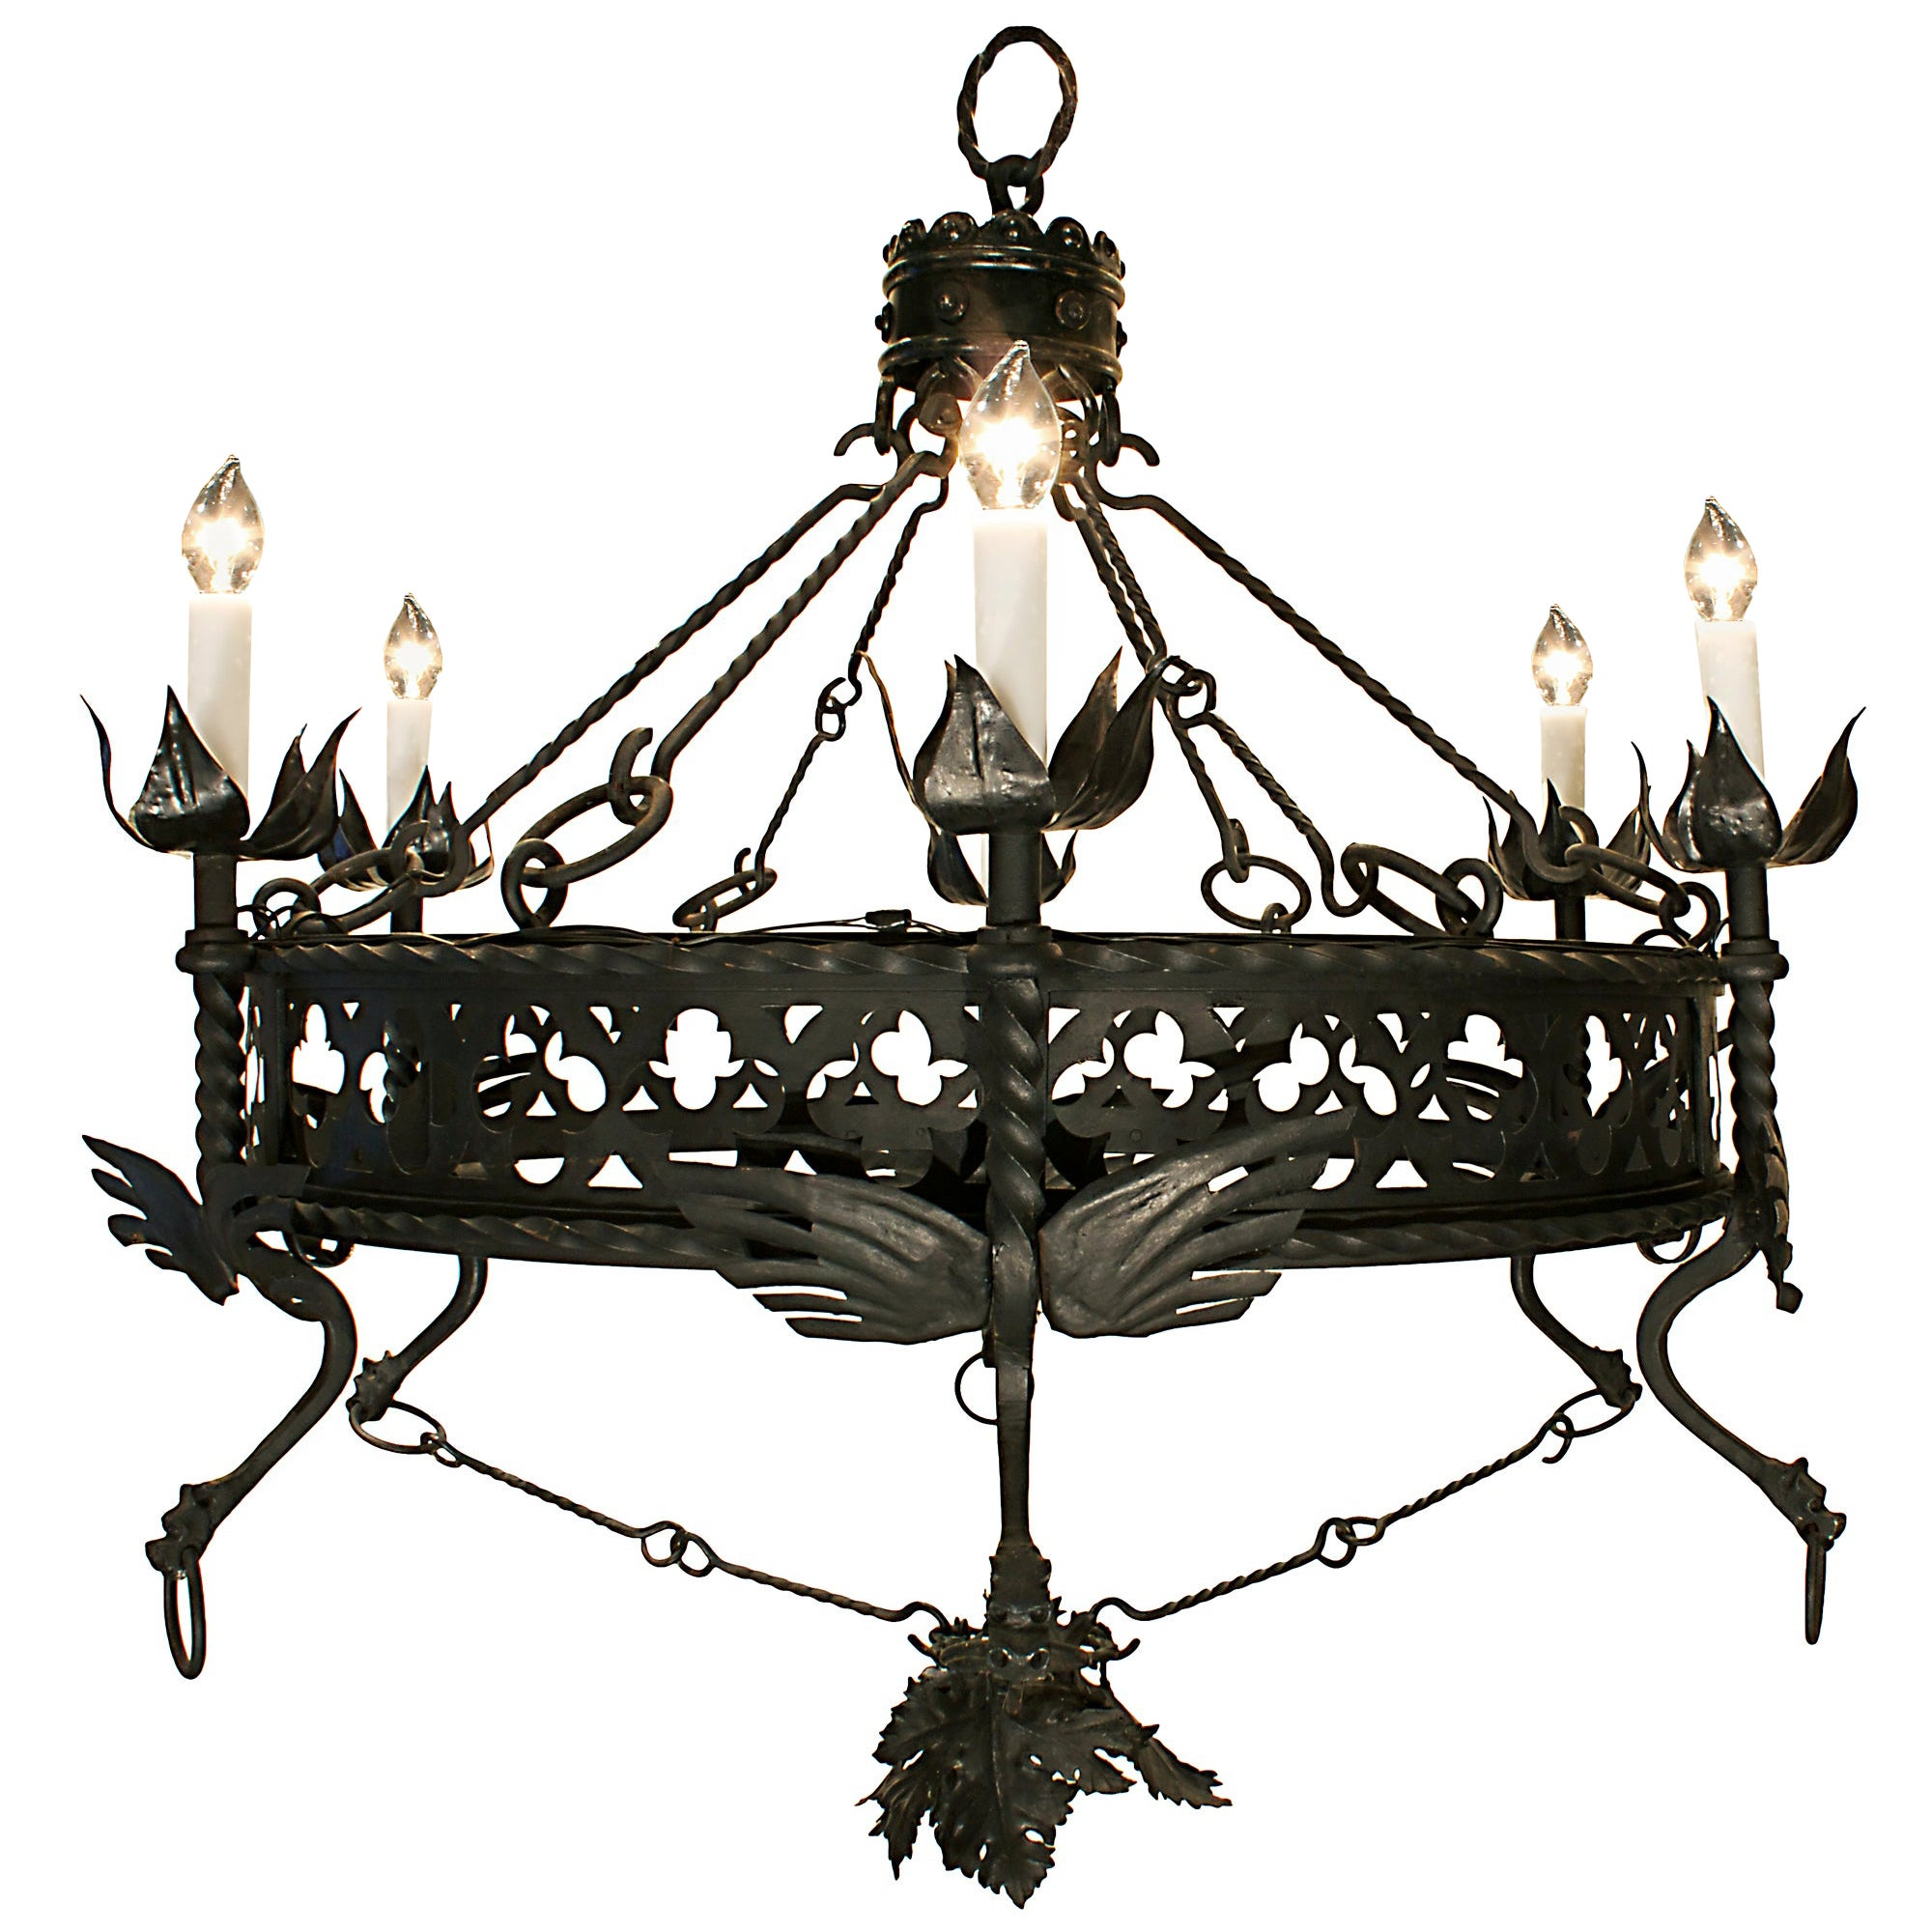 19th Century Wrought Iron Patinated Six Light Chandelier